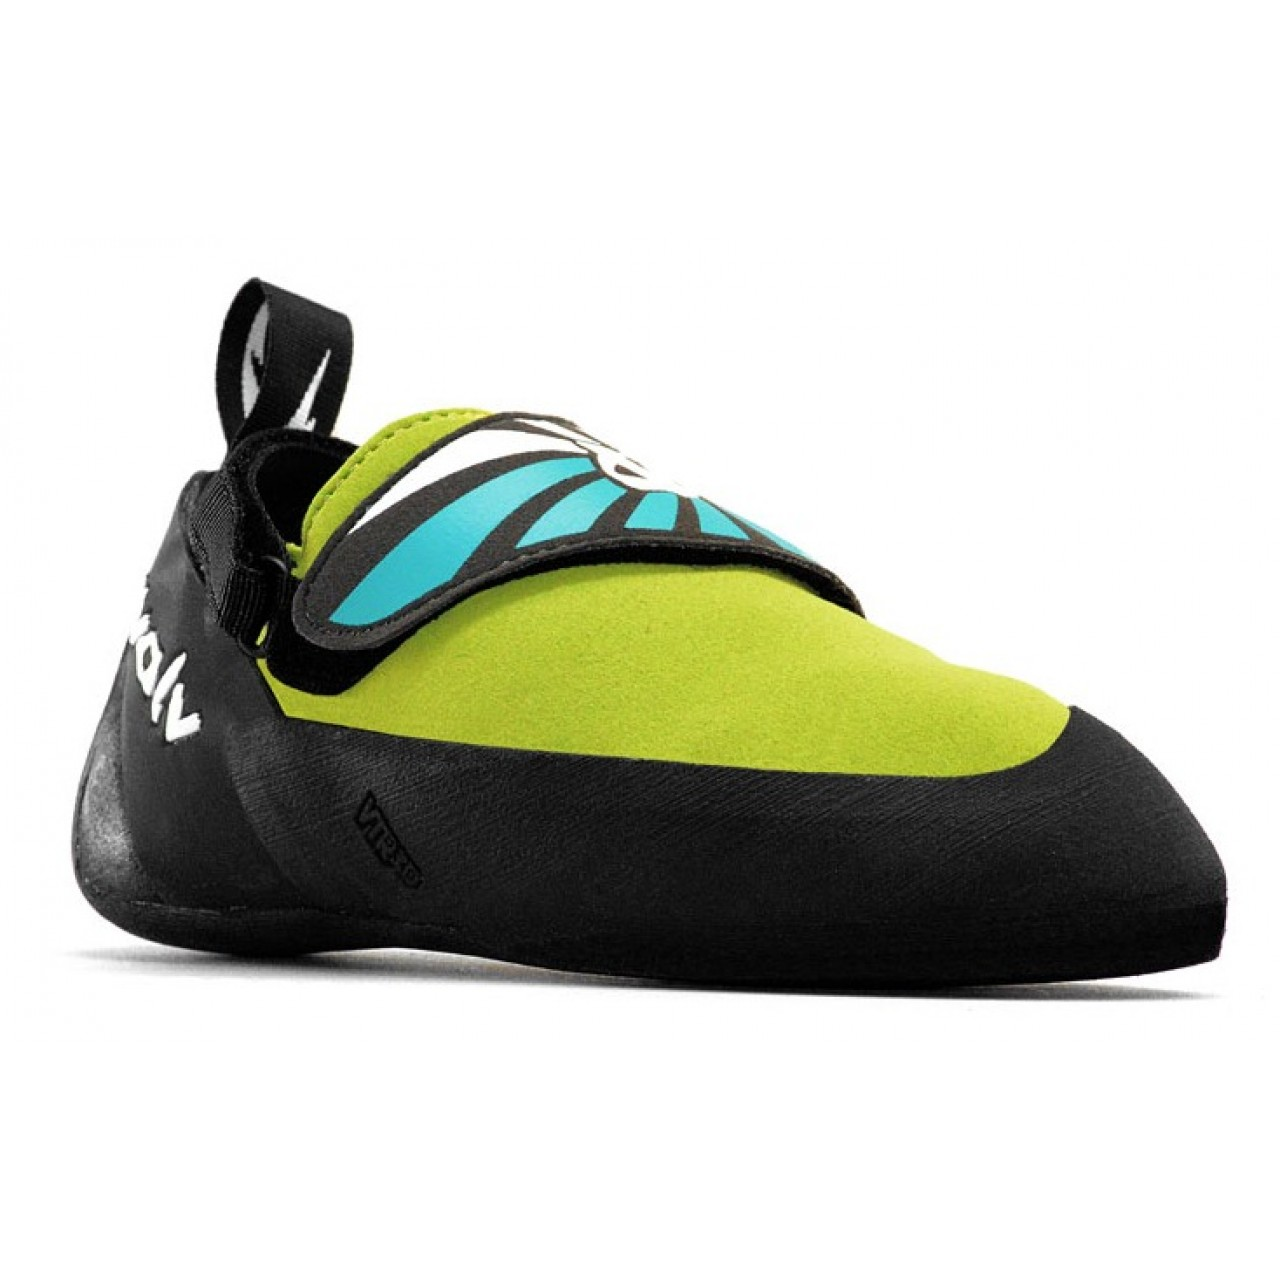 High Profile Climbing Shoes